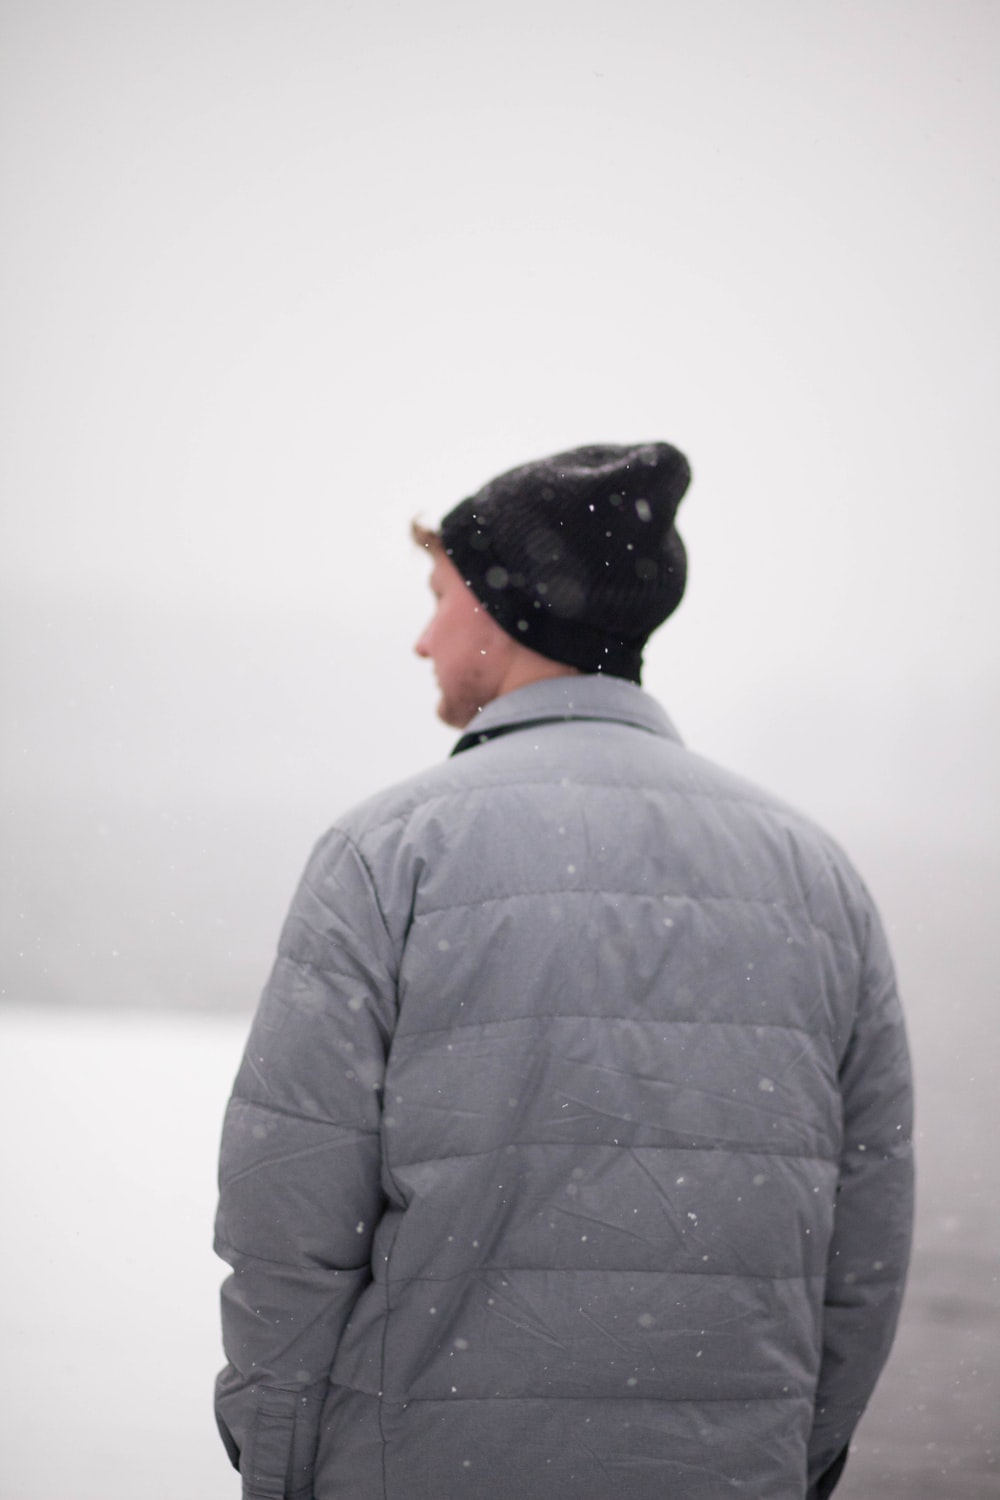 man wearing gray jacket under snow